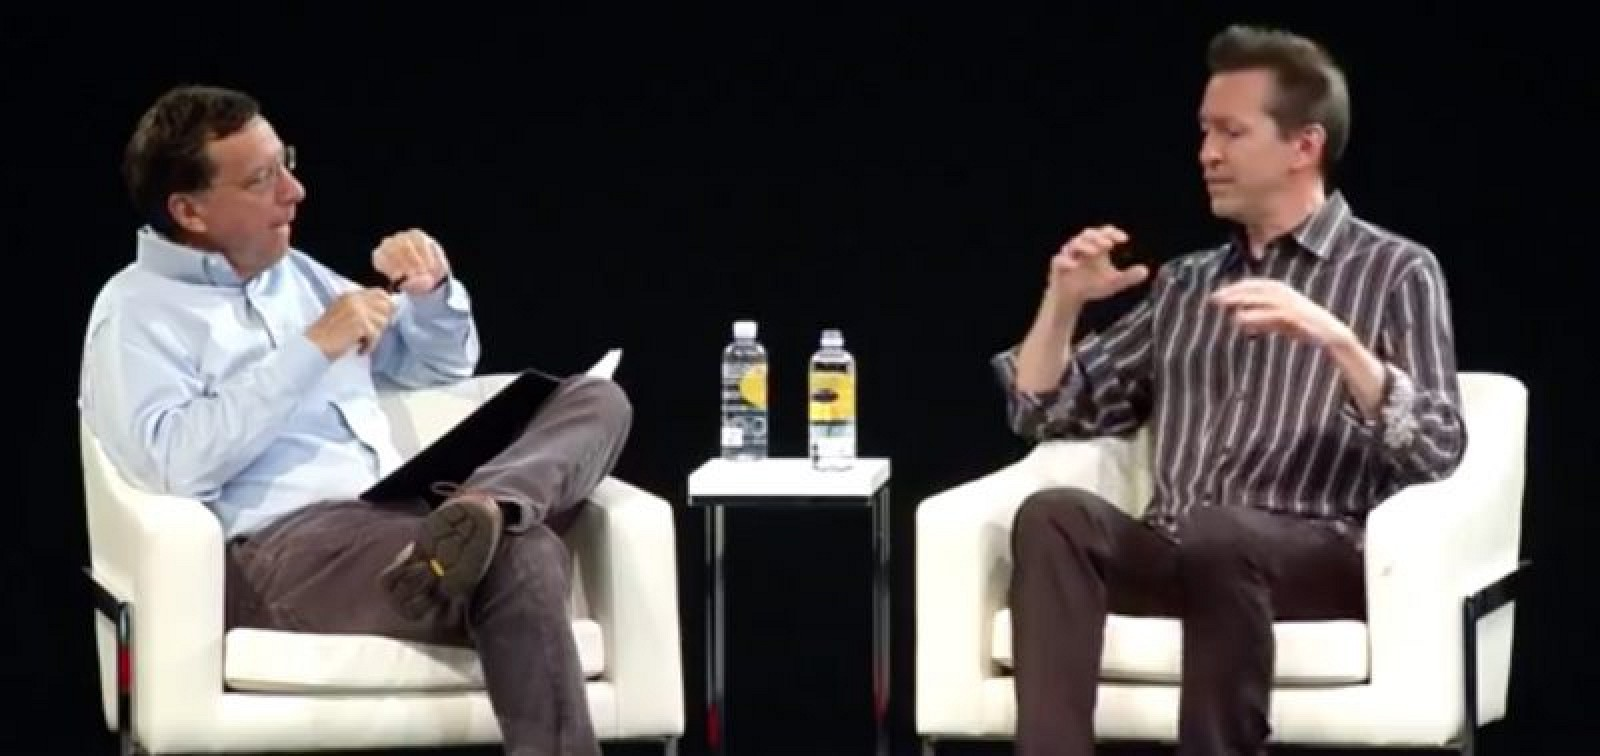 Former iOS Chief Scott Forstall Discusses Creating the First iPhone